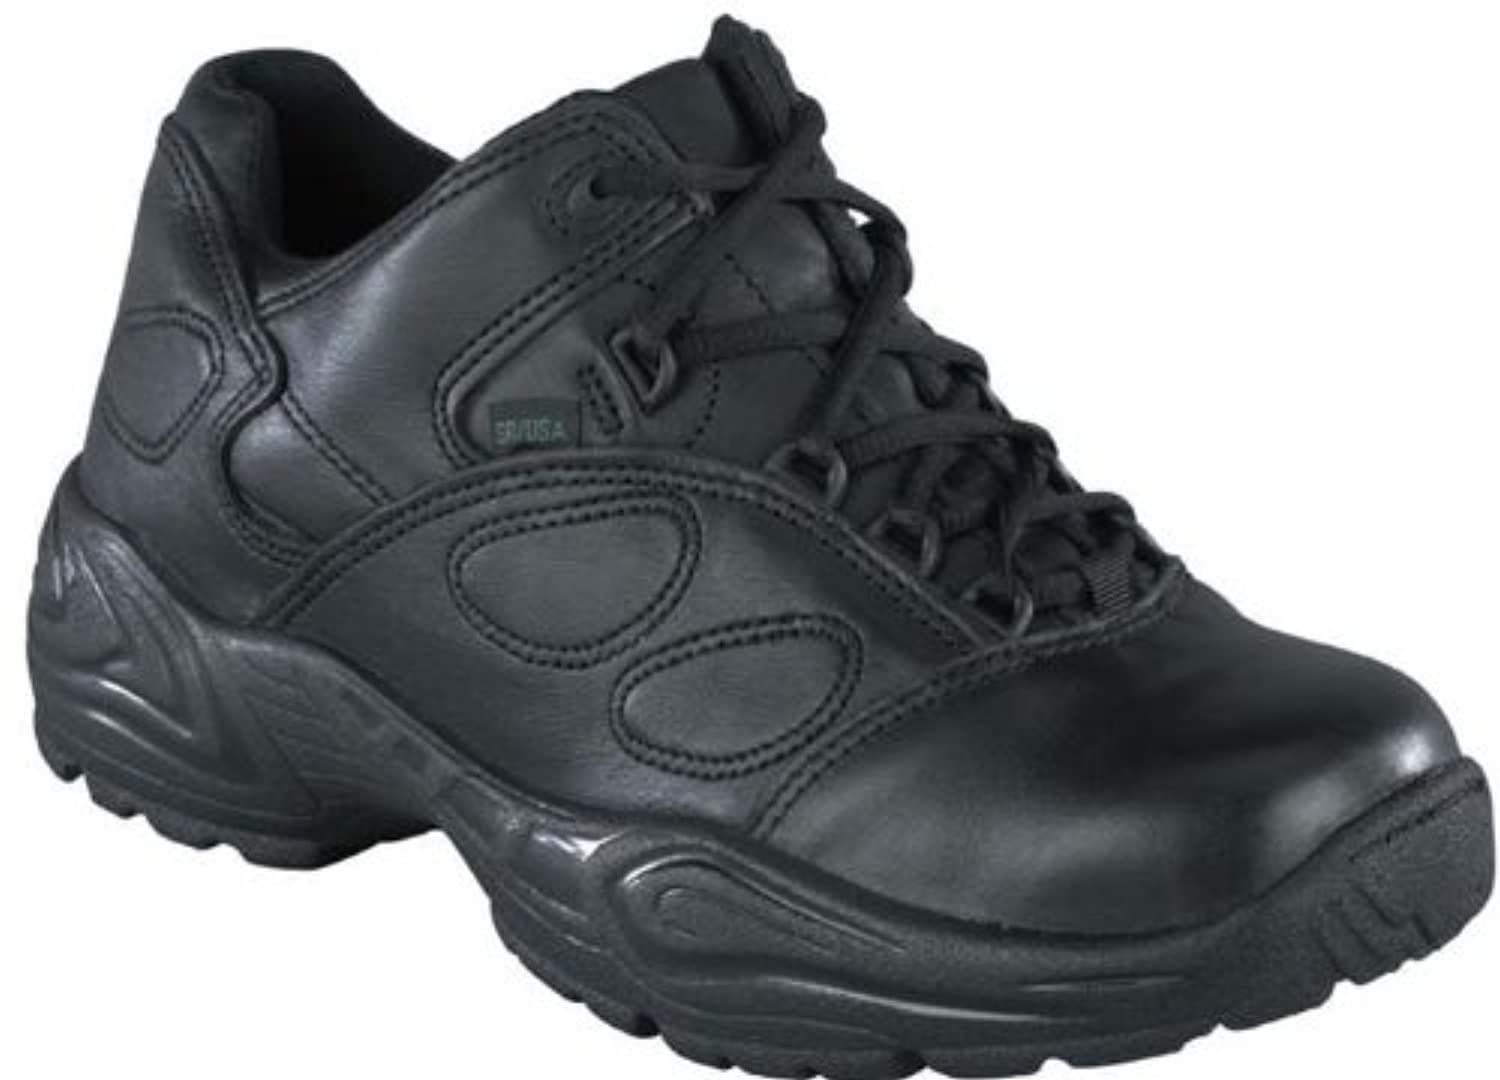 Reebok CP810 Women's Postal Express Shoe Black 6.5 W US